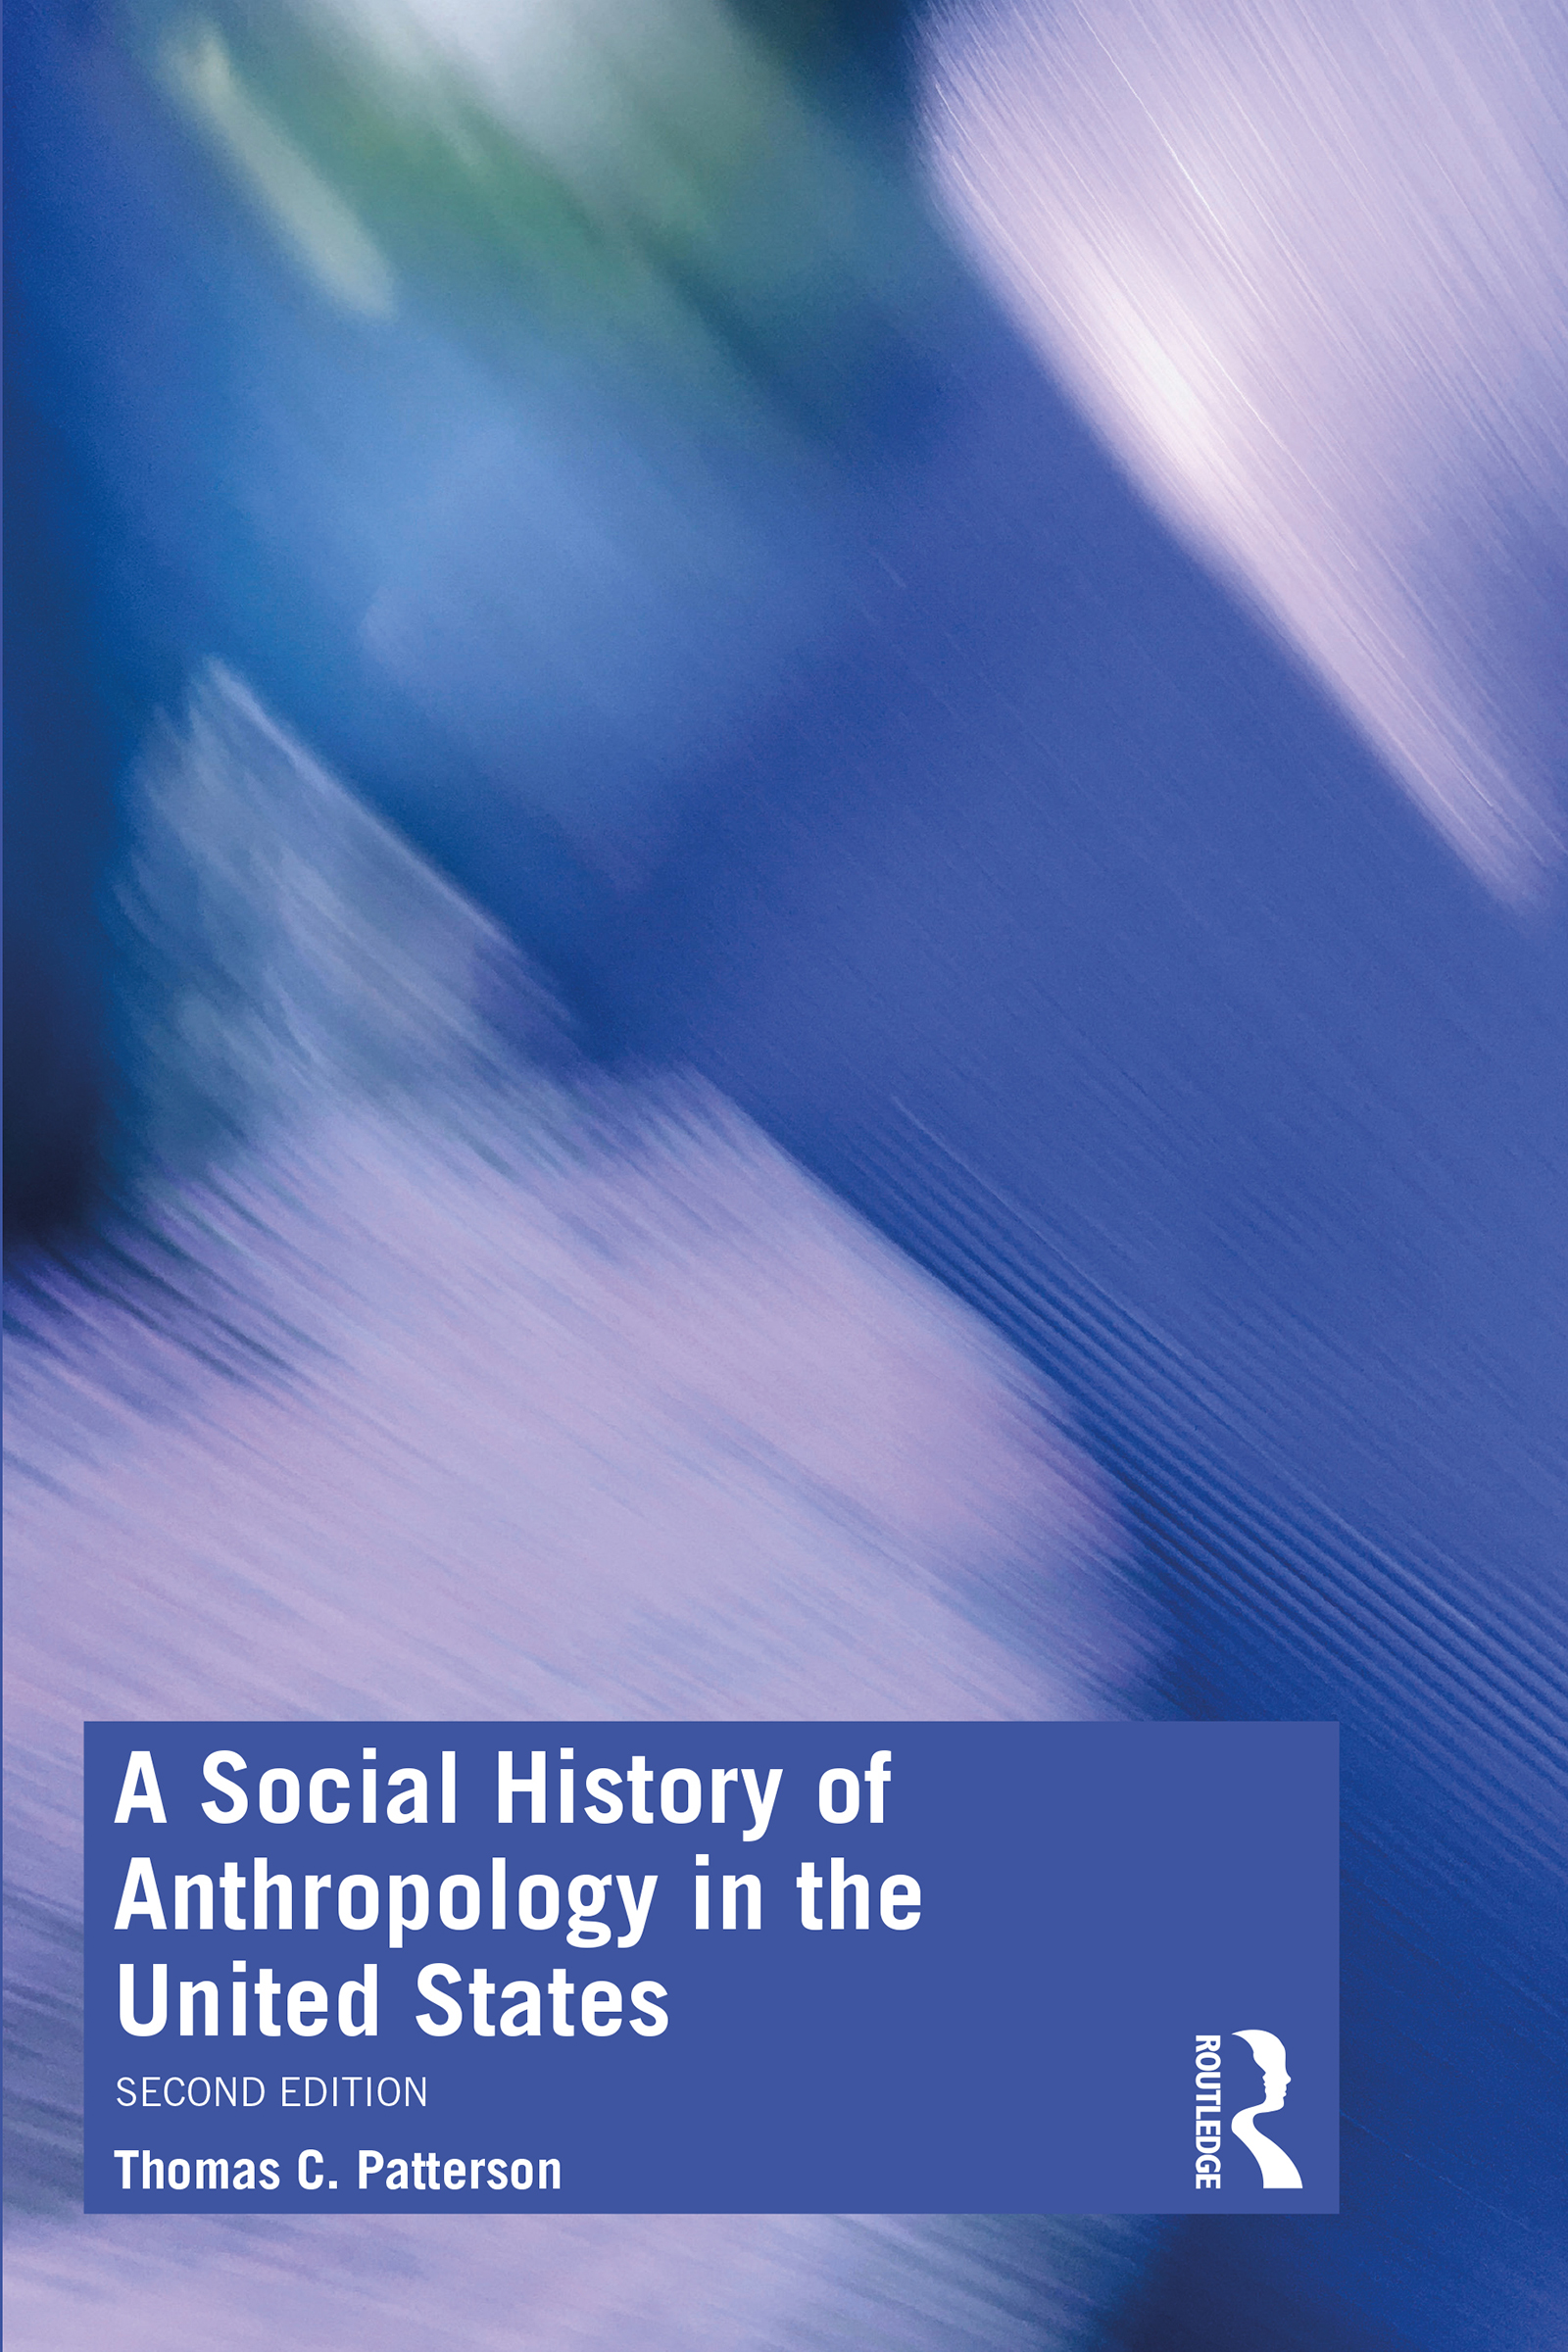 A Social History of Anthropology in the United States